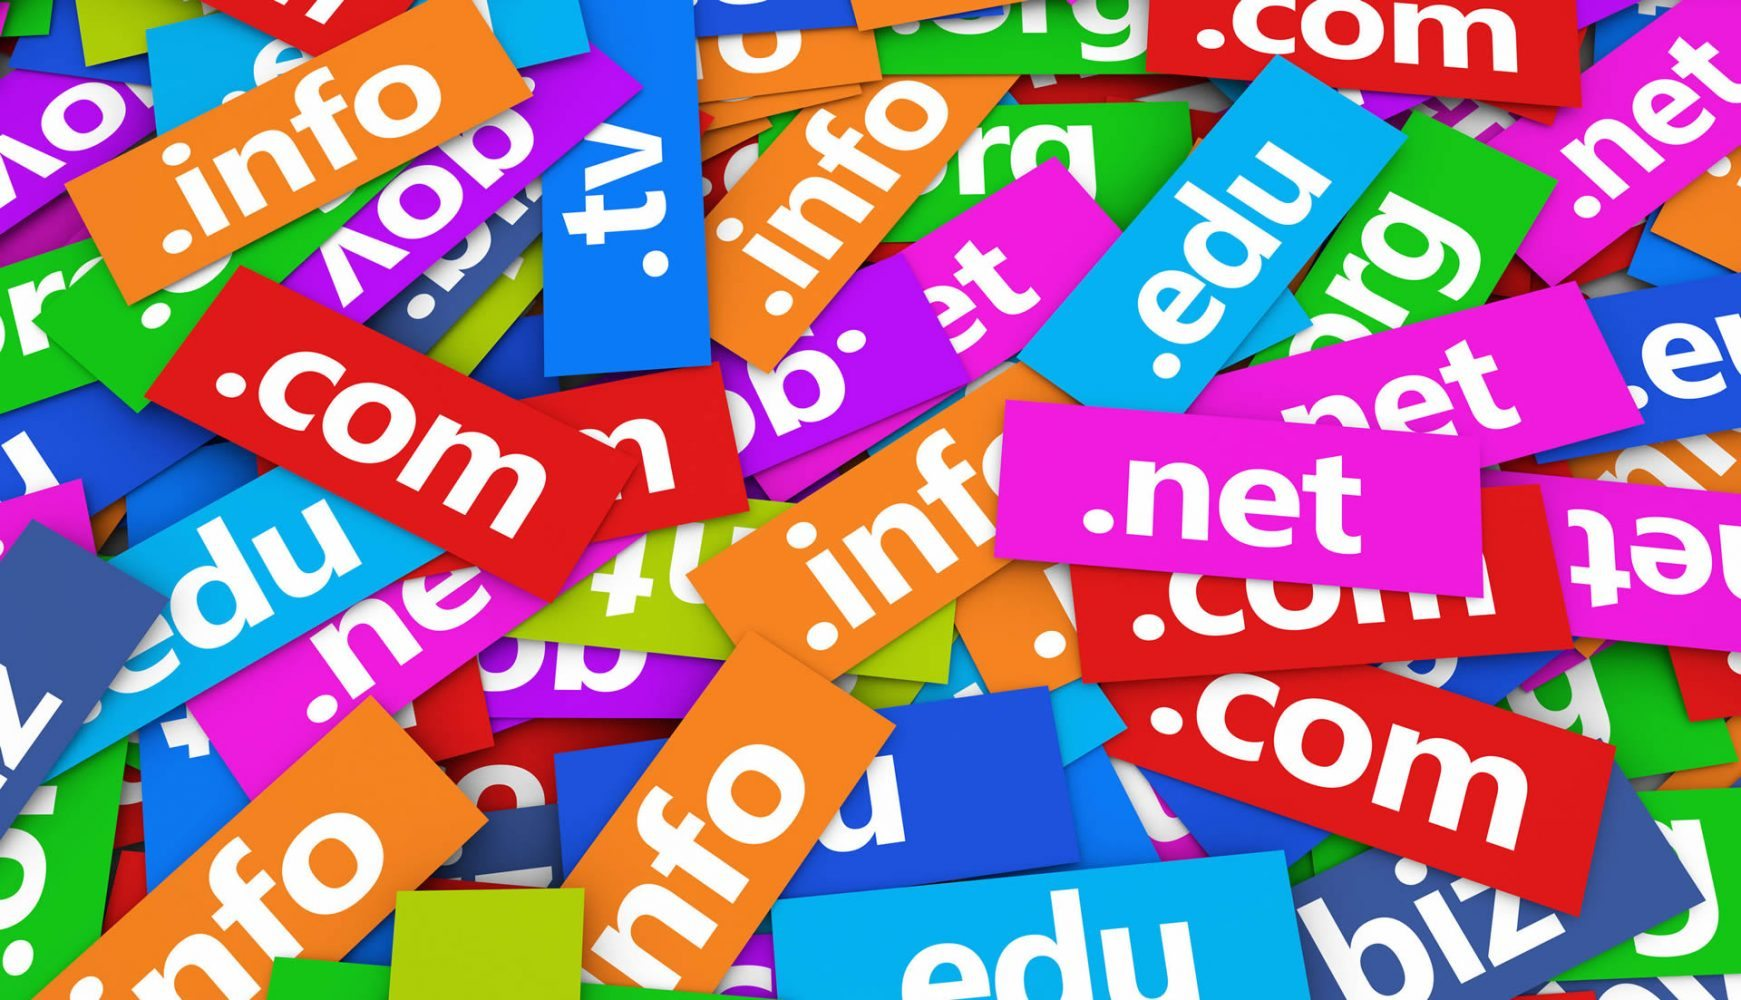 5 Available High DA Domains With Wikipedia Backlinks - Perfect For Development/SEO/PBN/301 Redirects